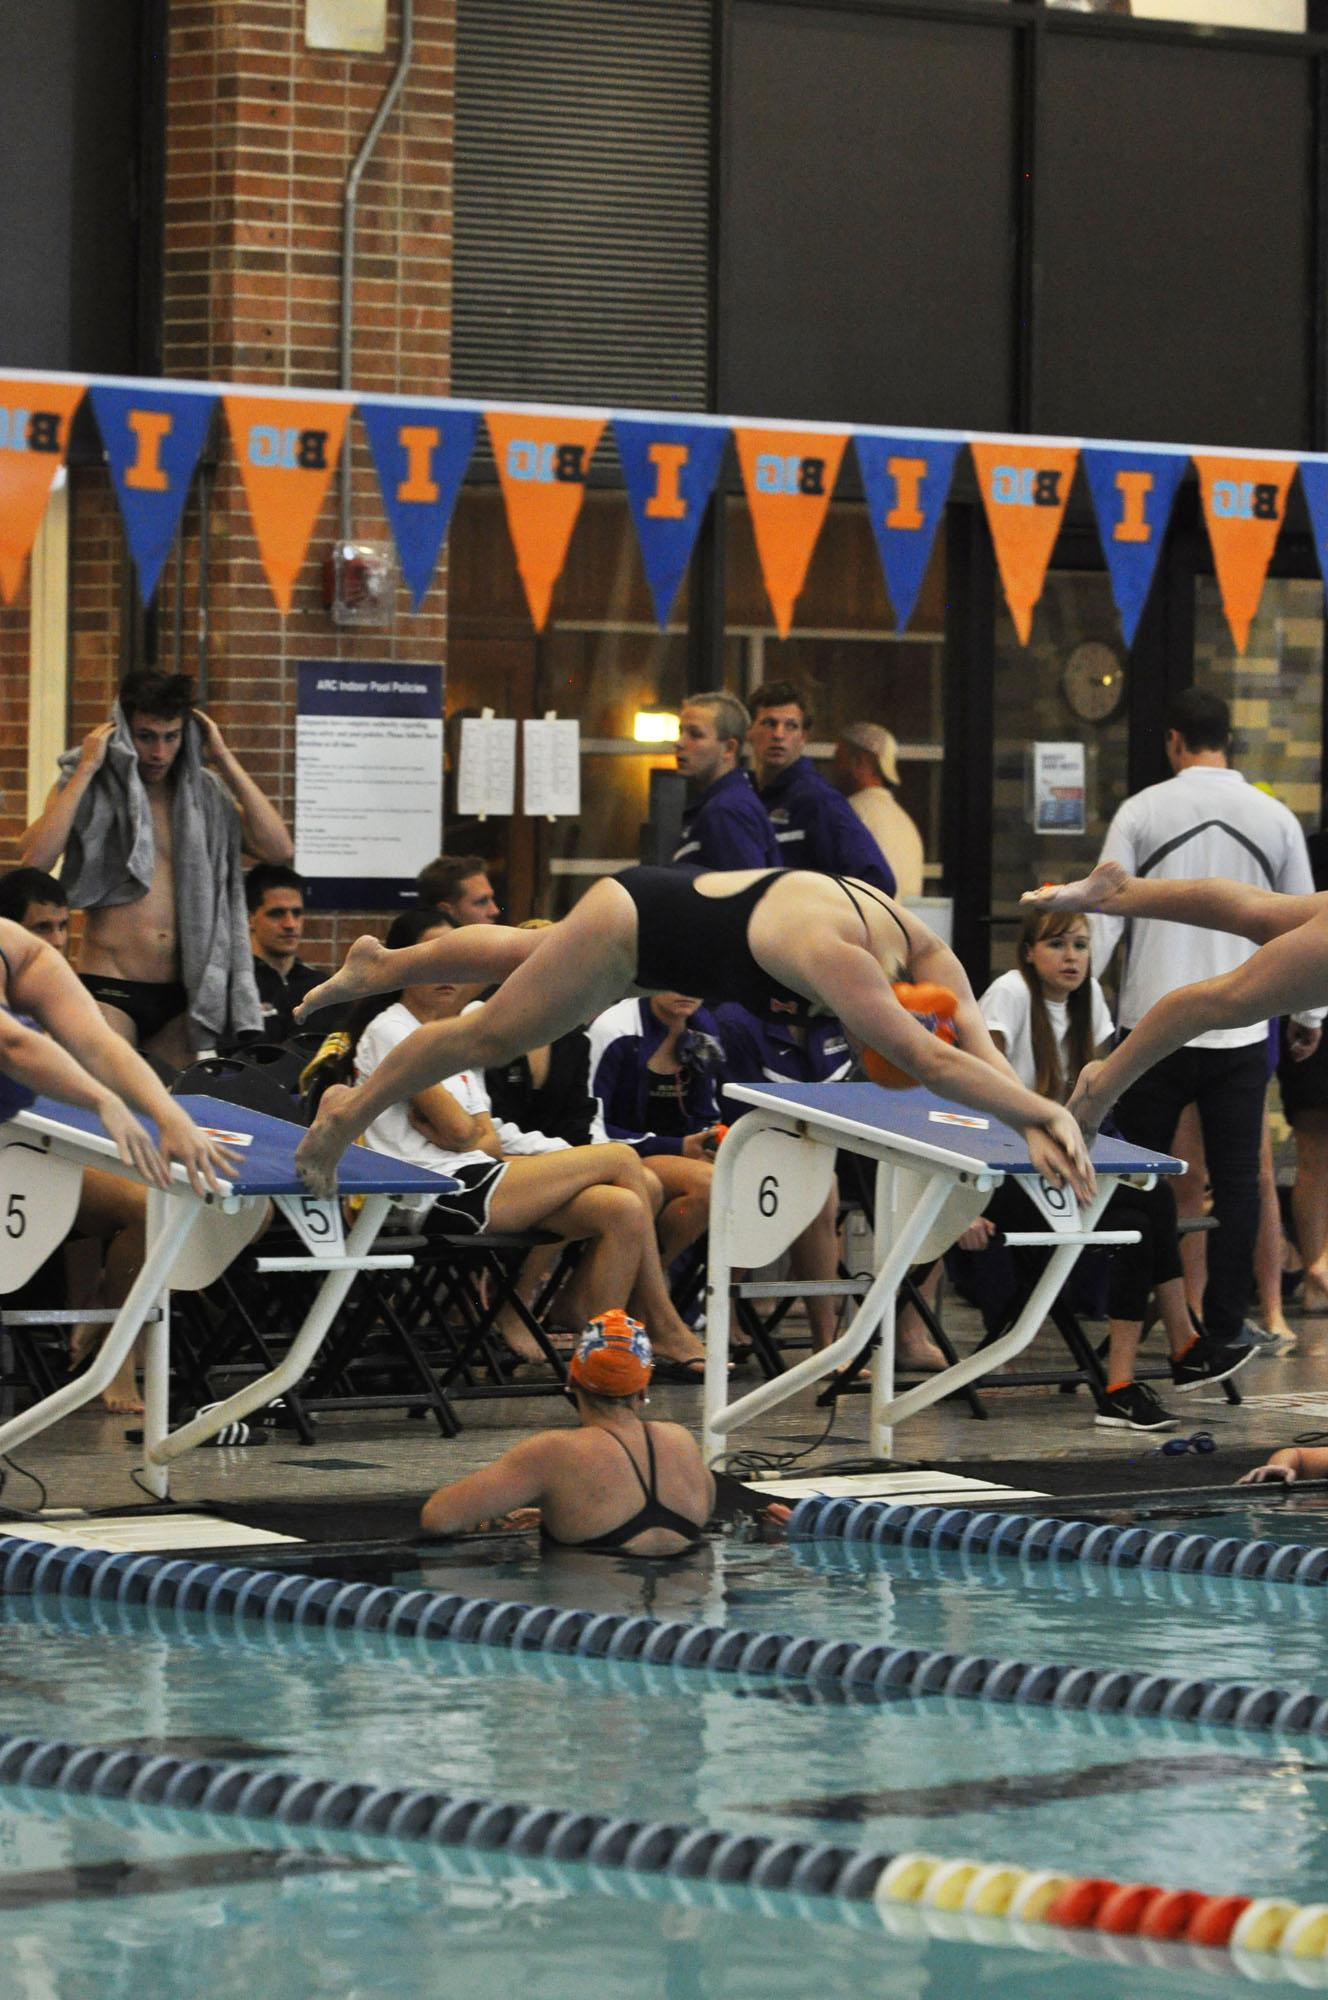 Amelia Schilling, junior, dives off the block for the 500 yard freestyle at the Fighting Illini Dual Meet Spectacular in the ARC Pool on October 16, 2015.